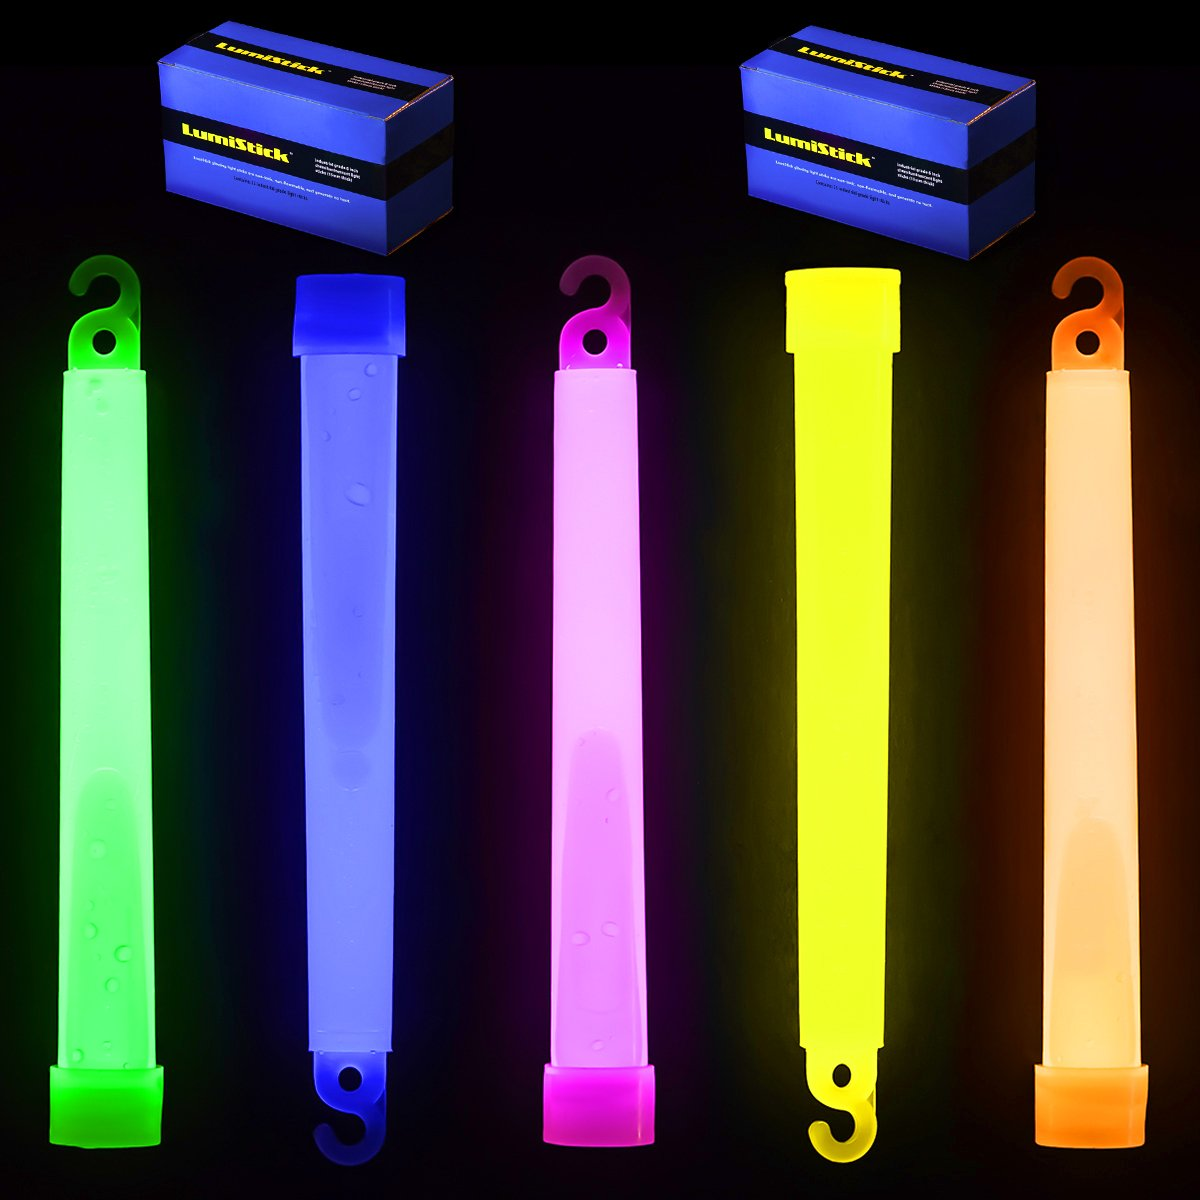 concert flashing necklaces props vocal color hot under party bracelet product glow led stick wand multi novelty cheer neon light sticks best toy dhgate